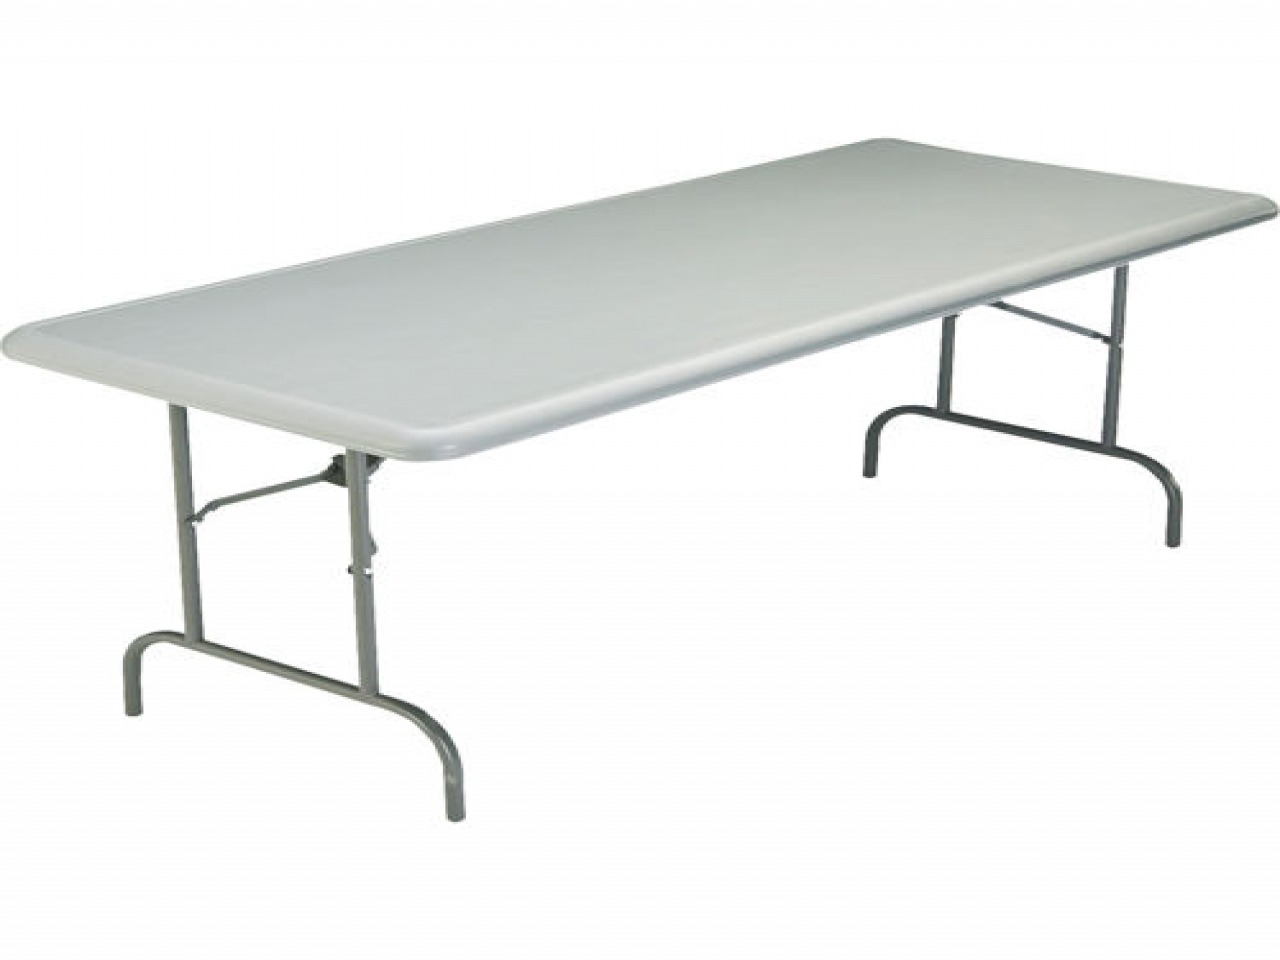 Folding Table and Chairs Costco | Costco Folding Tables | Fold in Half Table Costco